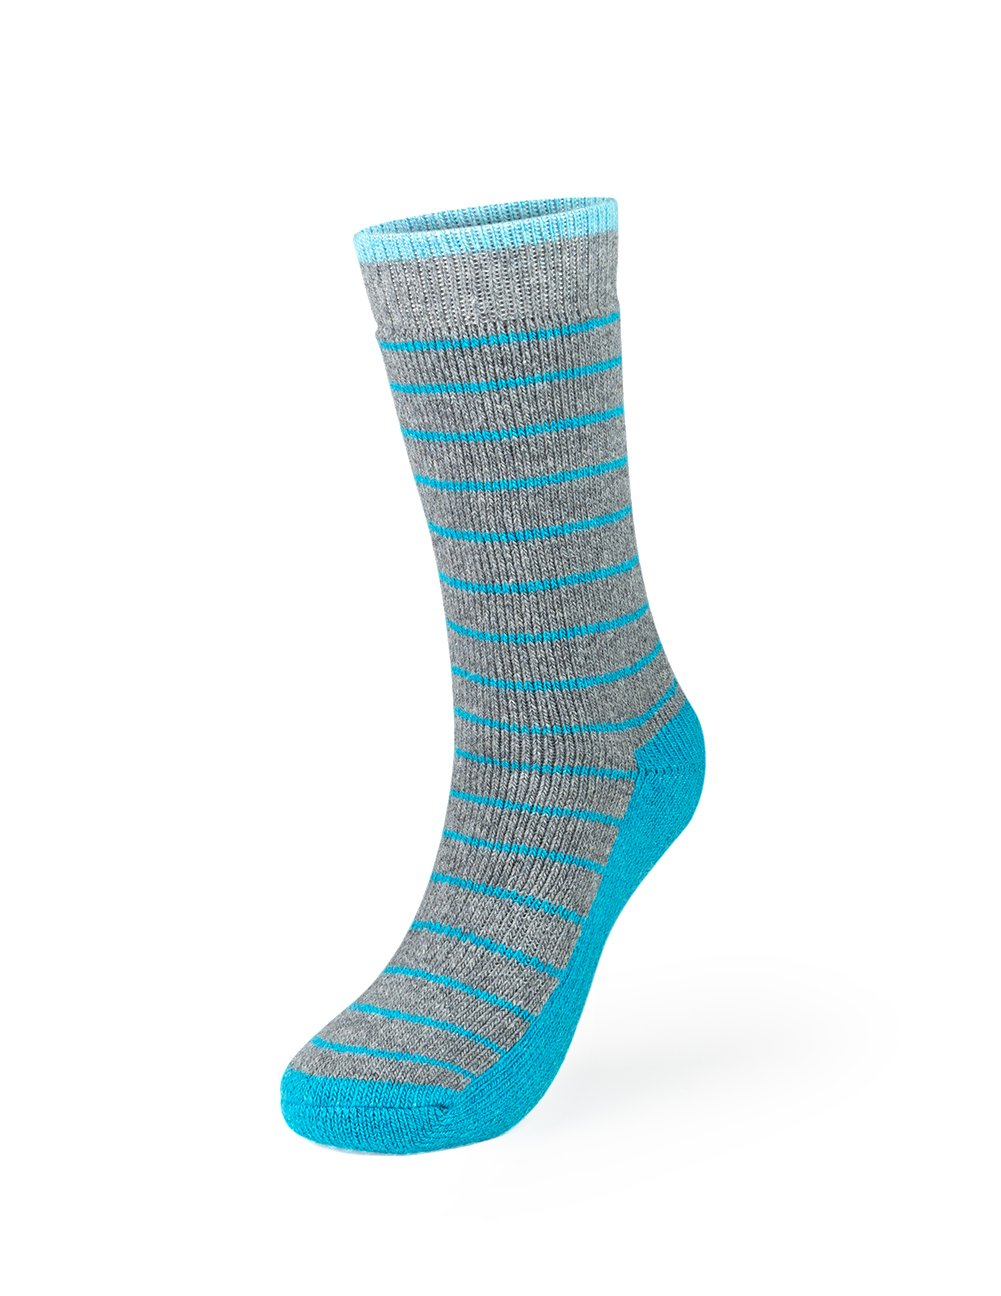 Kodiak - Women's Crew Socks - Style 4340 - Gray with Aqua Accents